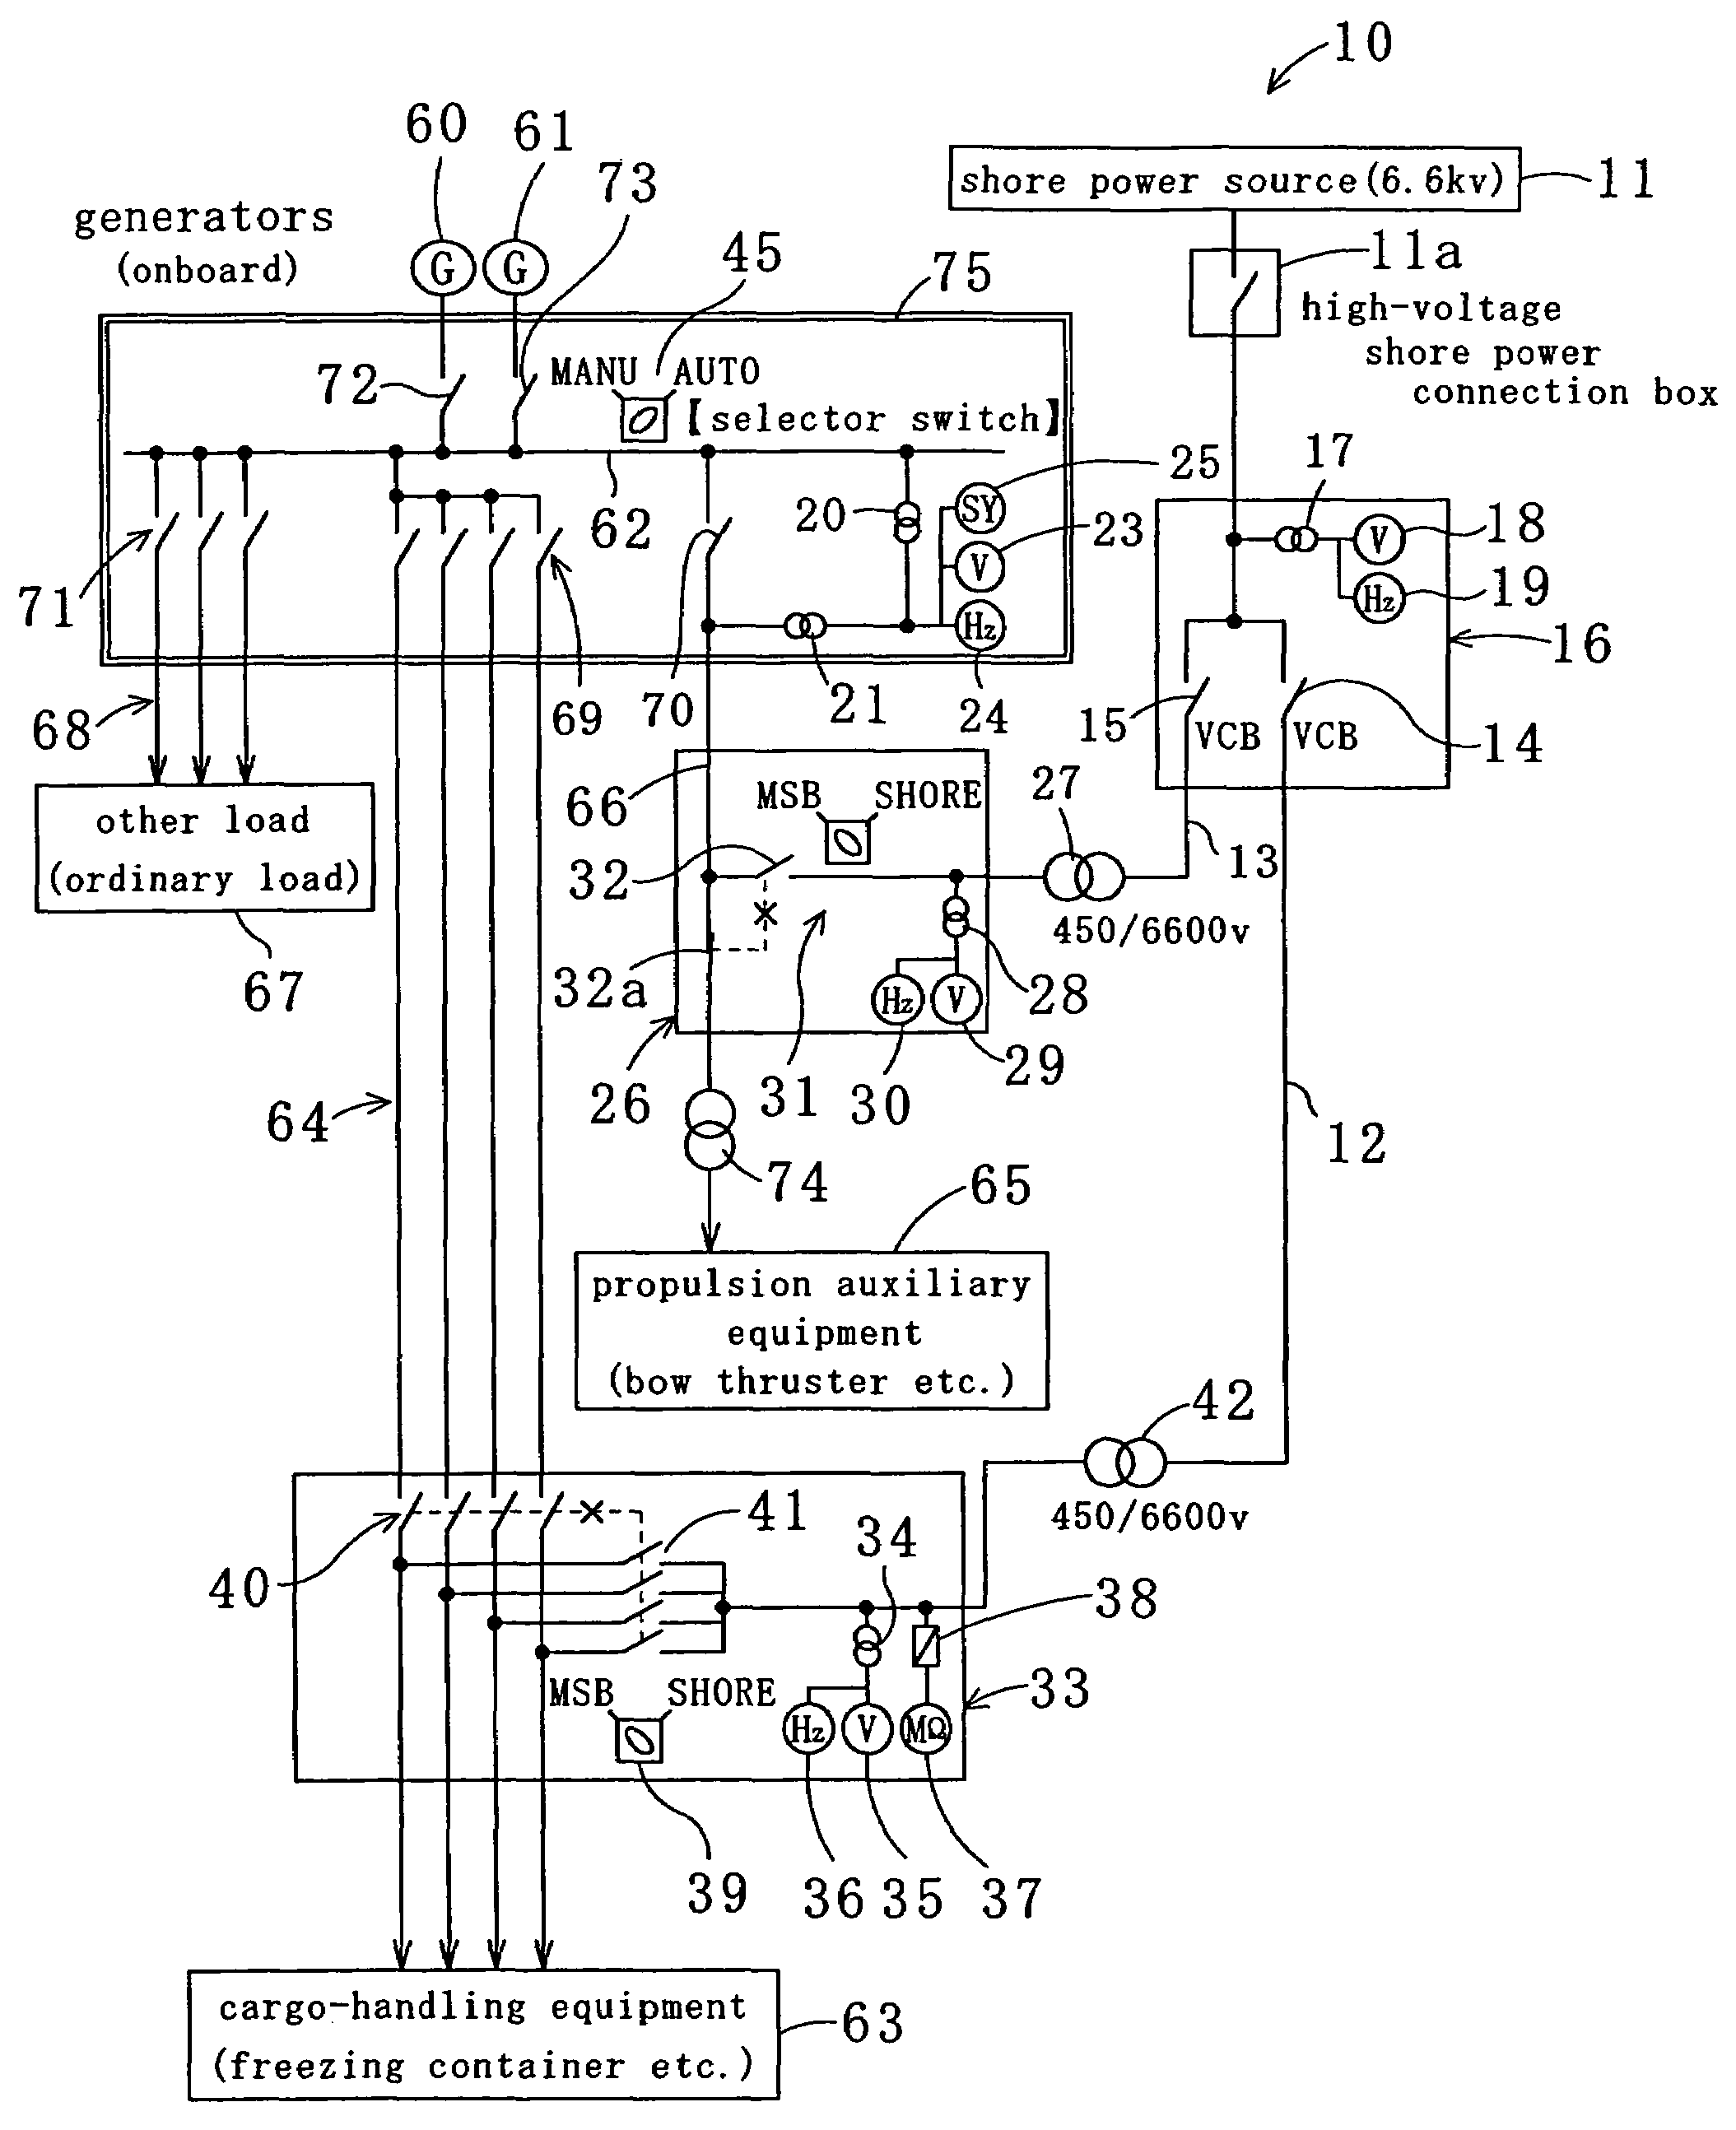 US07253538 20070807 D00000 patent us7253538 method of supplying electric power from shore vcb panel wiring diagram at nearapp.co